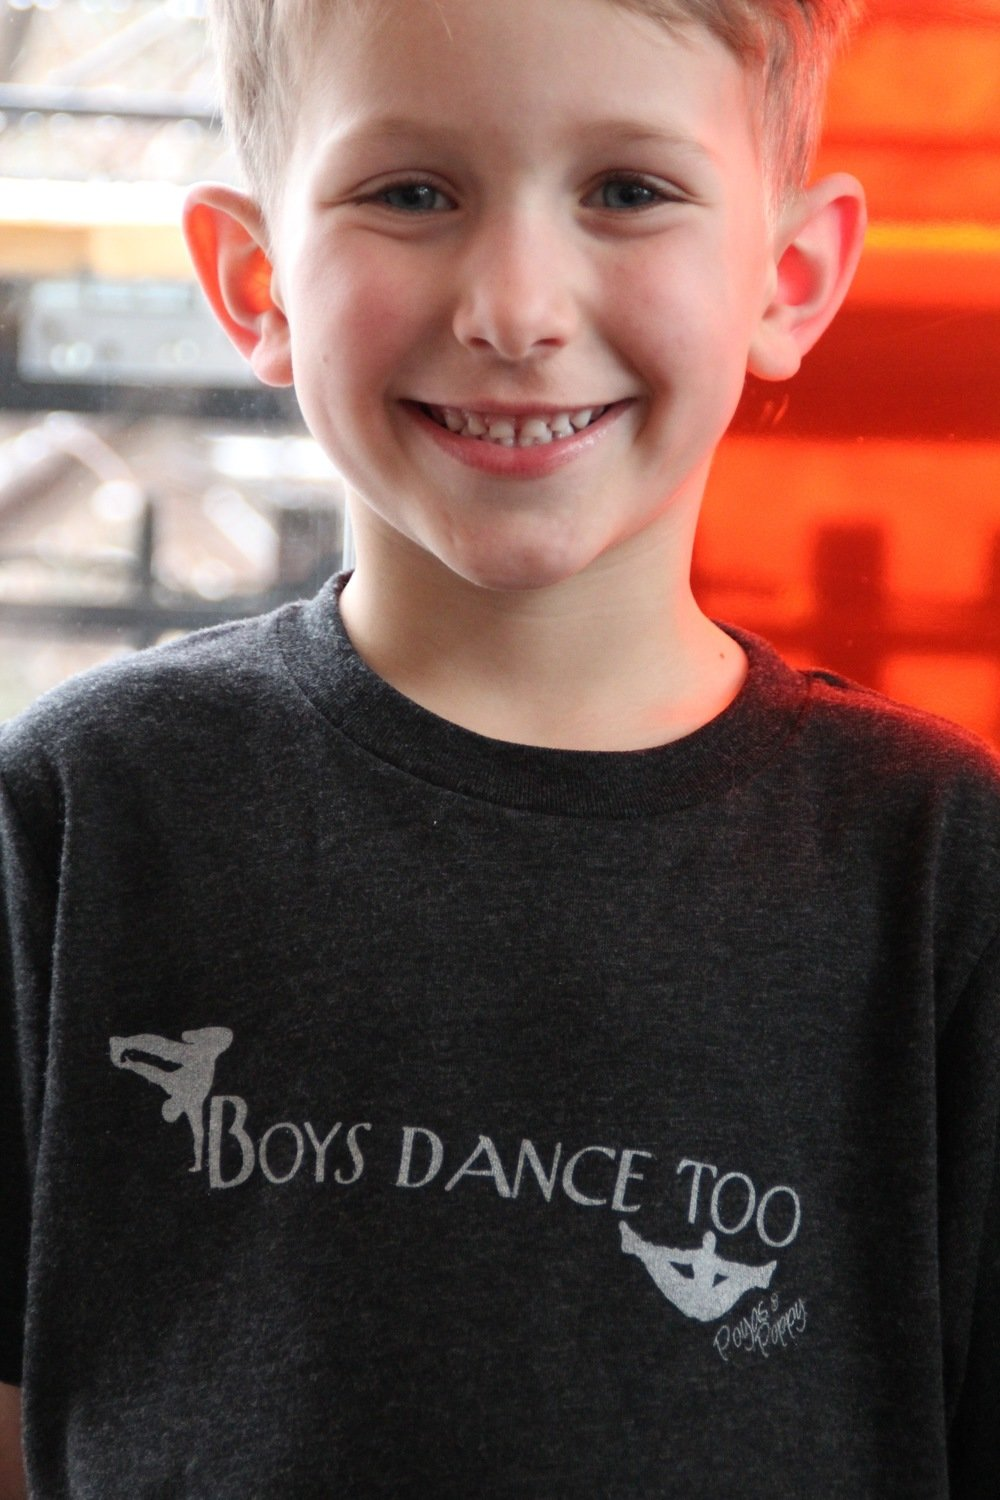 Boys Dance Too Youth Tee